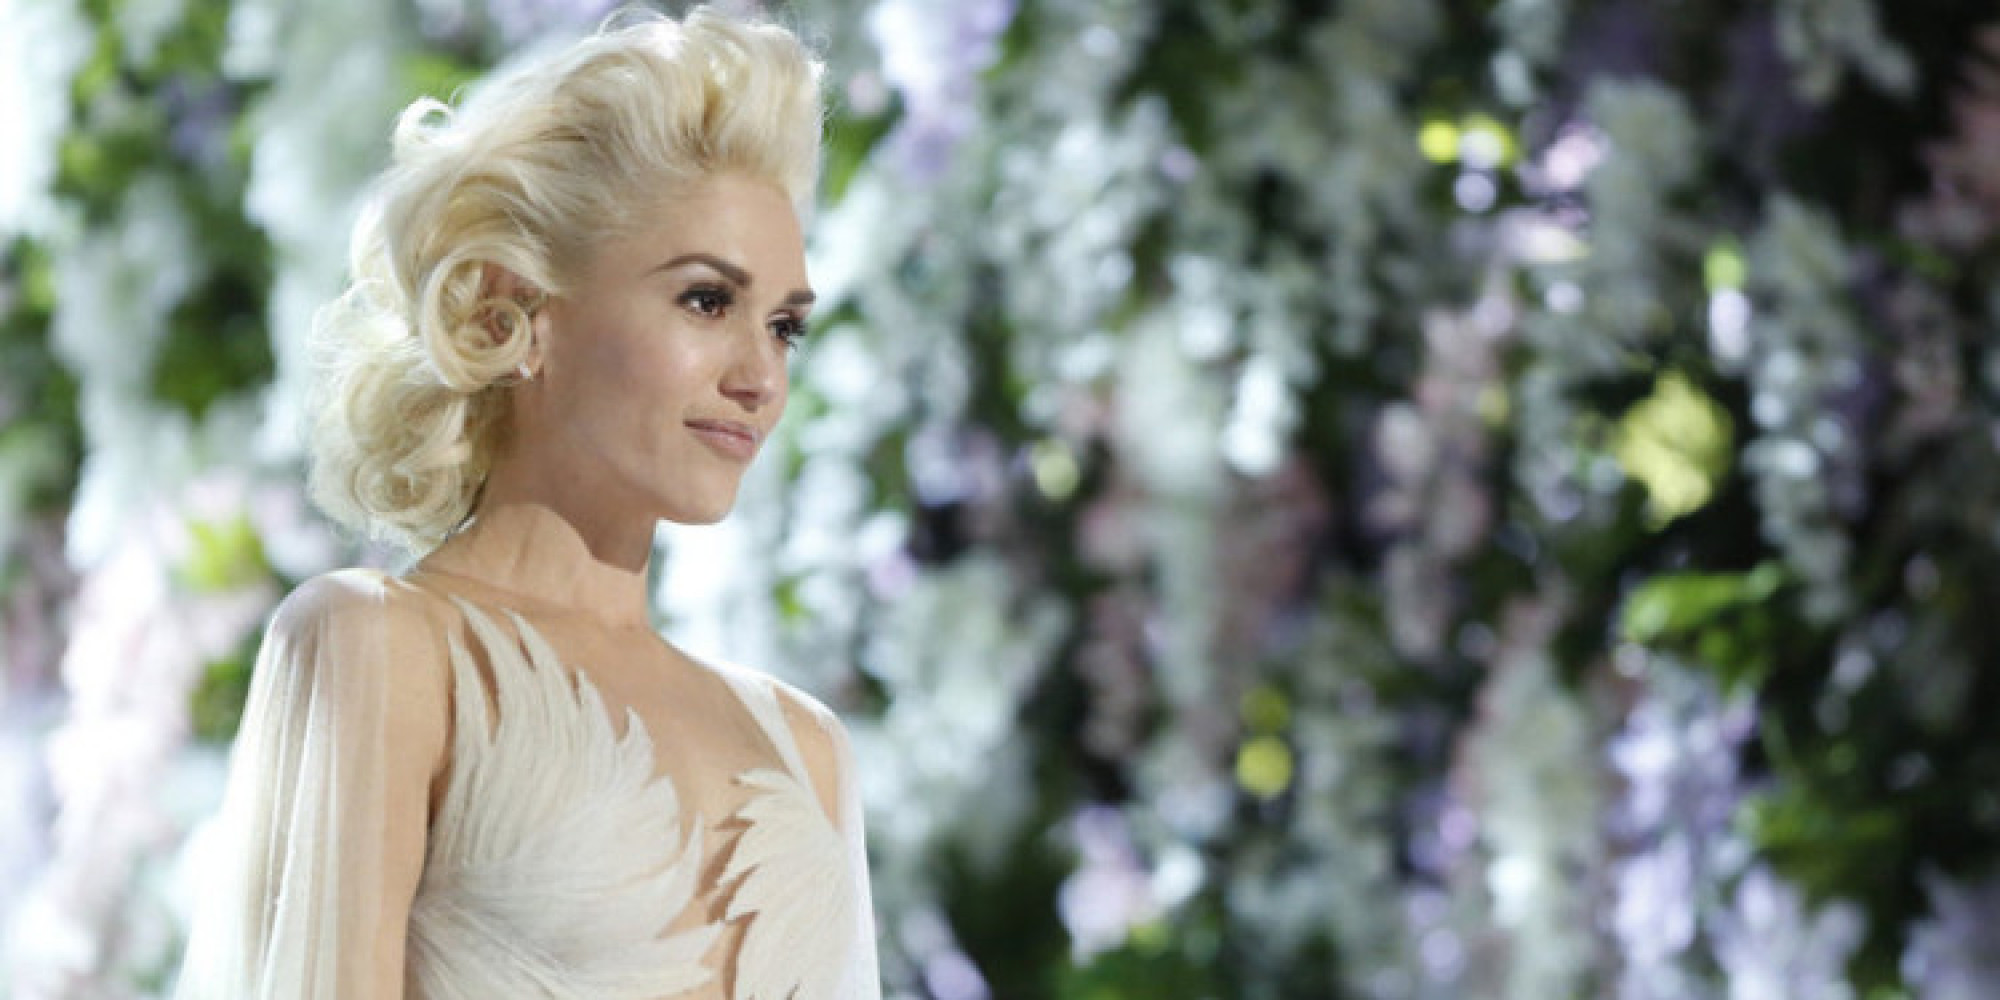 Gwen Stefani Wears Wedding Dress For Emotional 'Used To Love You ...